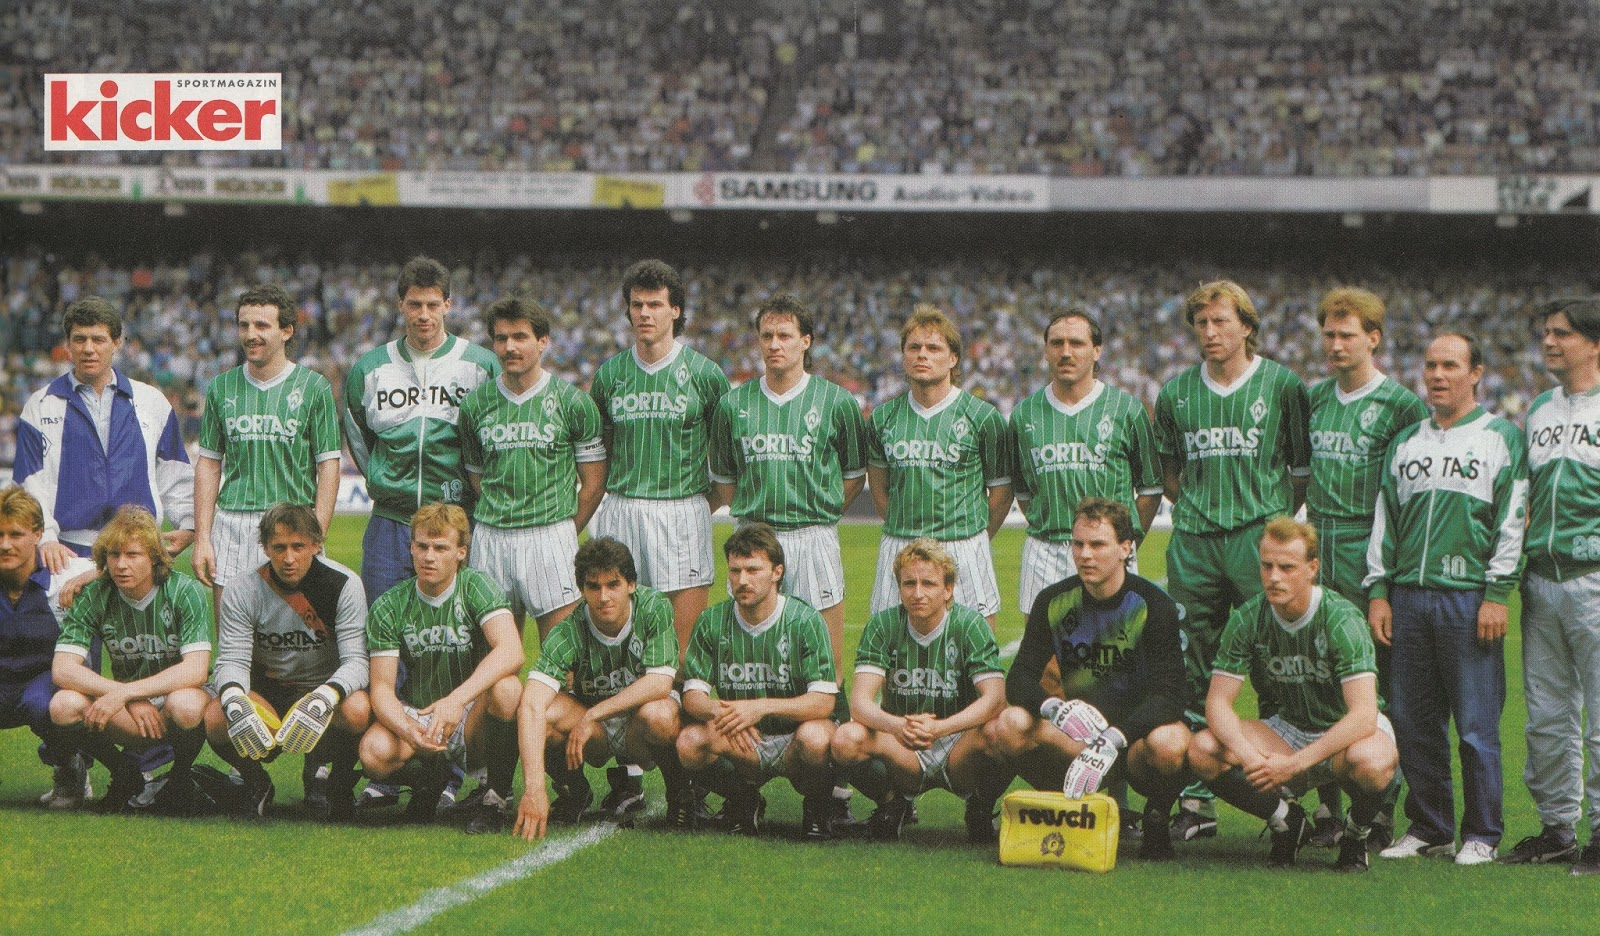 Sezona 1993/94 (Champions League, UEFA Cup, Cup Winner's Cup) Werder+8788